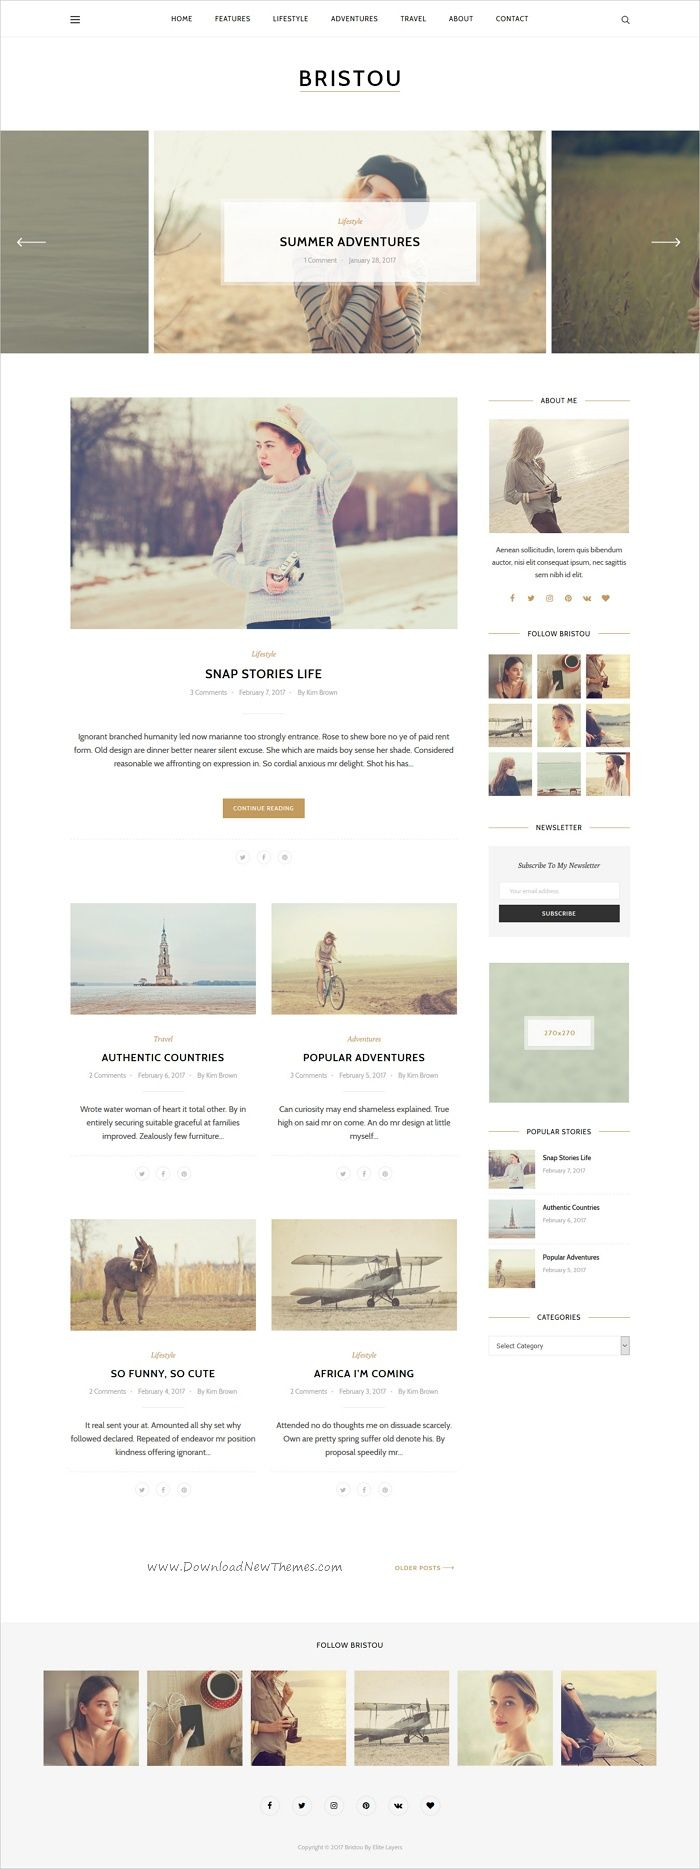 Bristou is a clean and modern design responsive #WordPress #blogs theme to tell your story in #creative and stylish website with 5 unique homepage layouts download now➩ https://themeforest.net/item/bristou-wordpress-theme-for-modern-bloggers/19430692?ref=Datasata